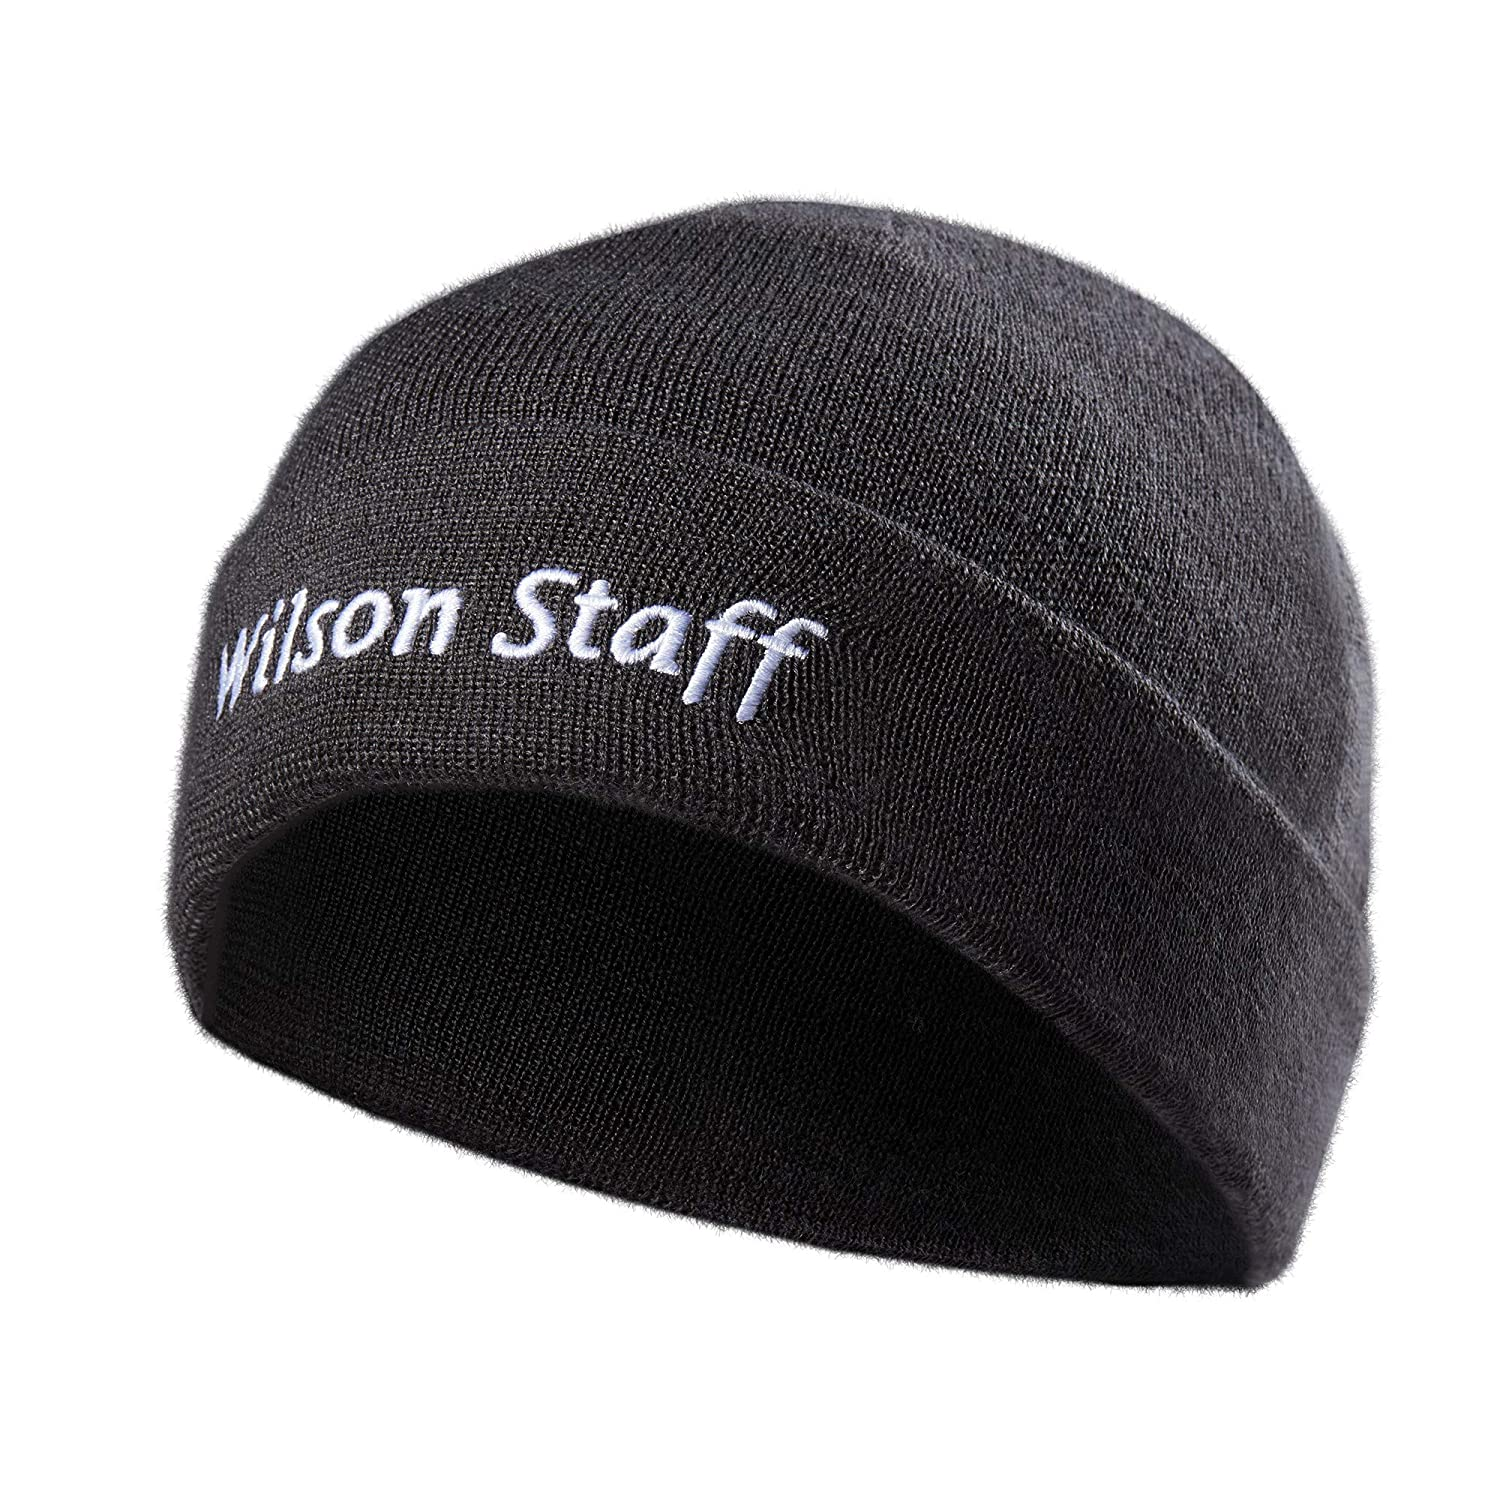 1409dc54158 Amazon.com  Wilson Staff Knitted Golf Beanie  Sports   Outdoors